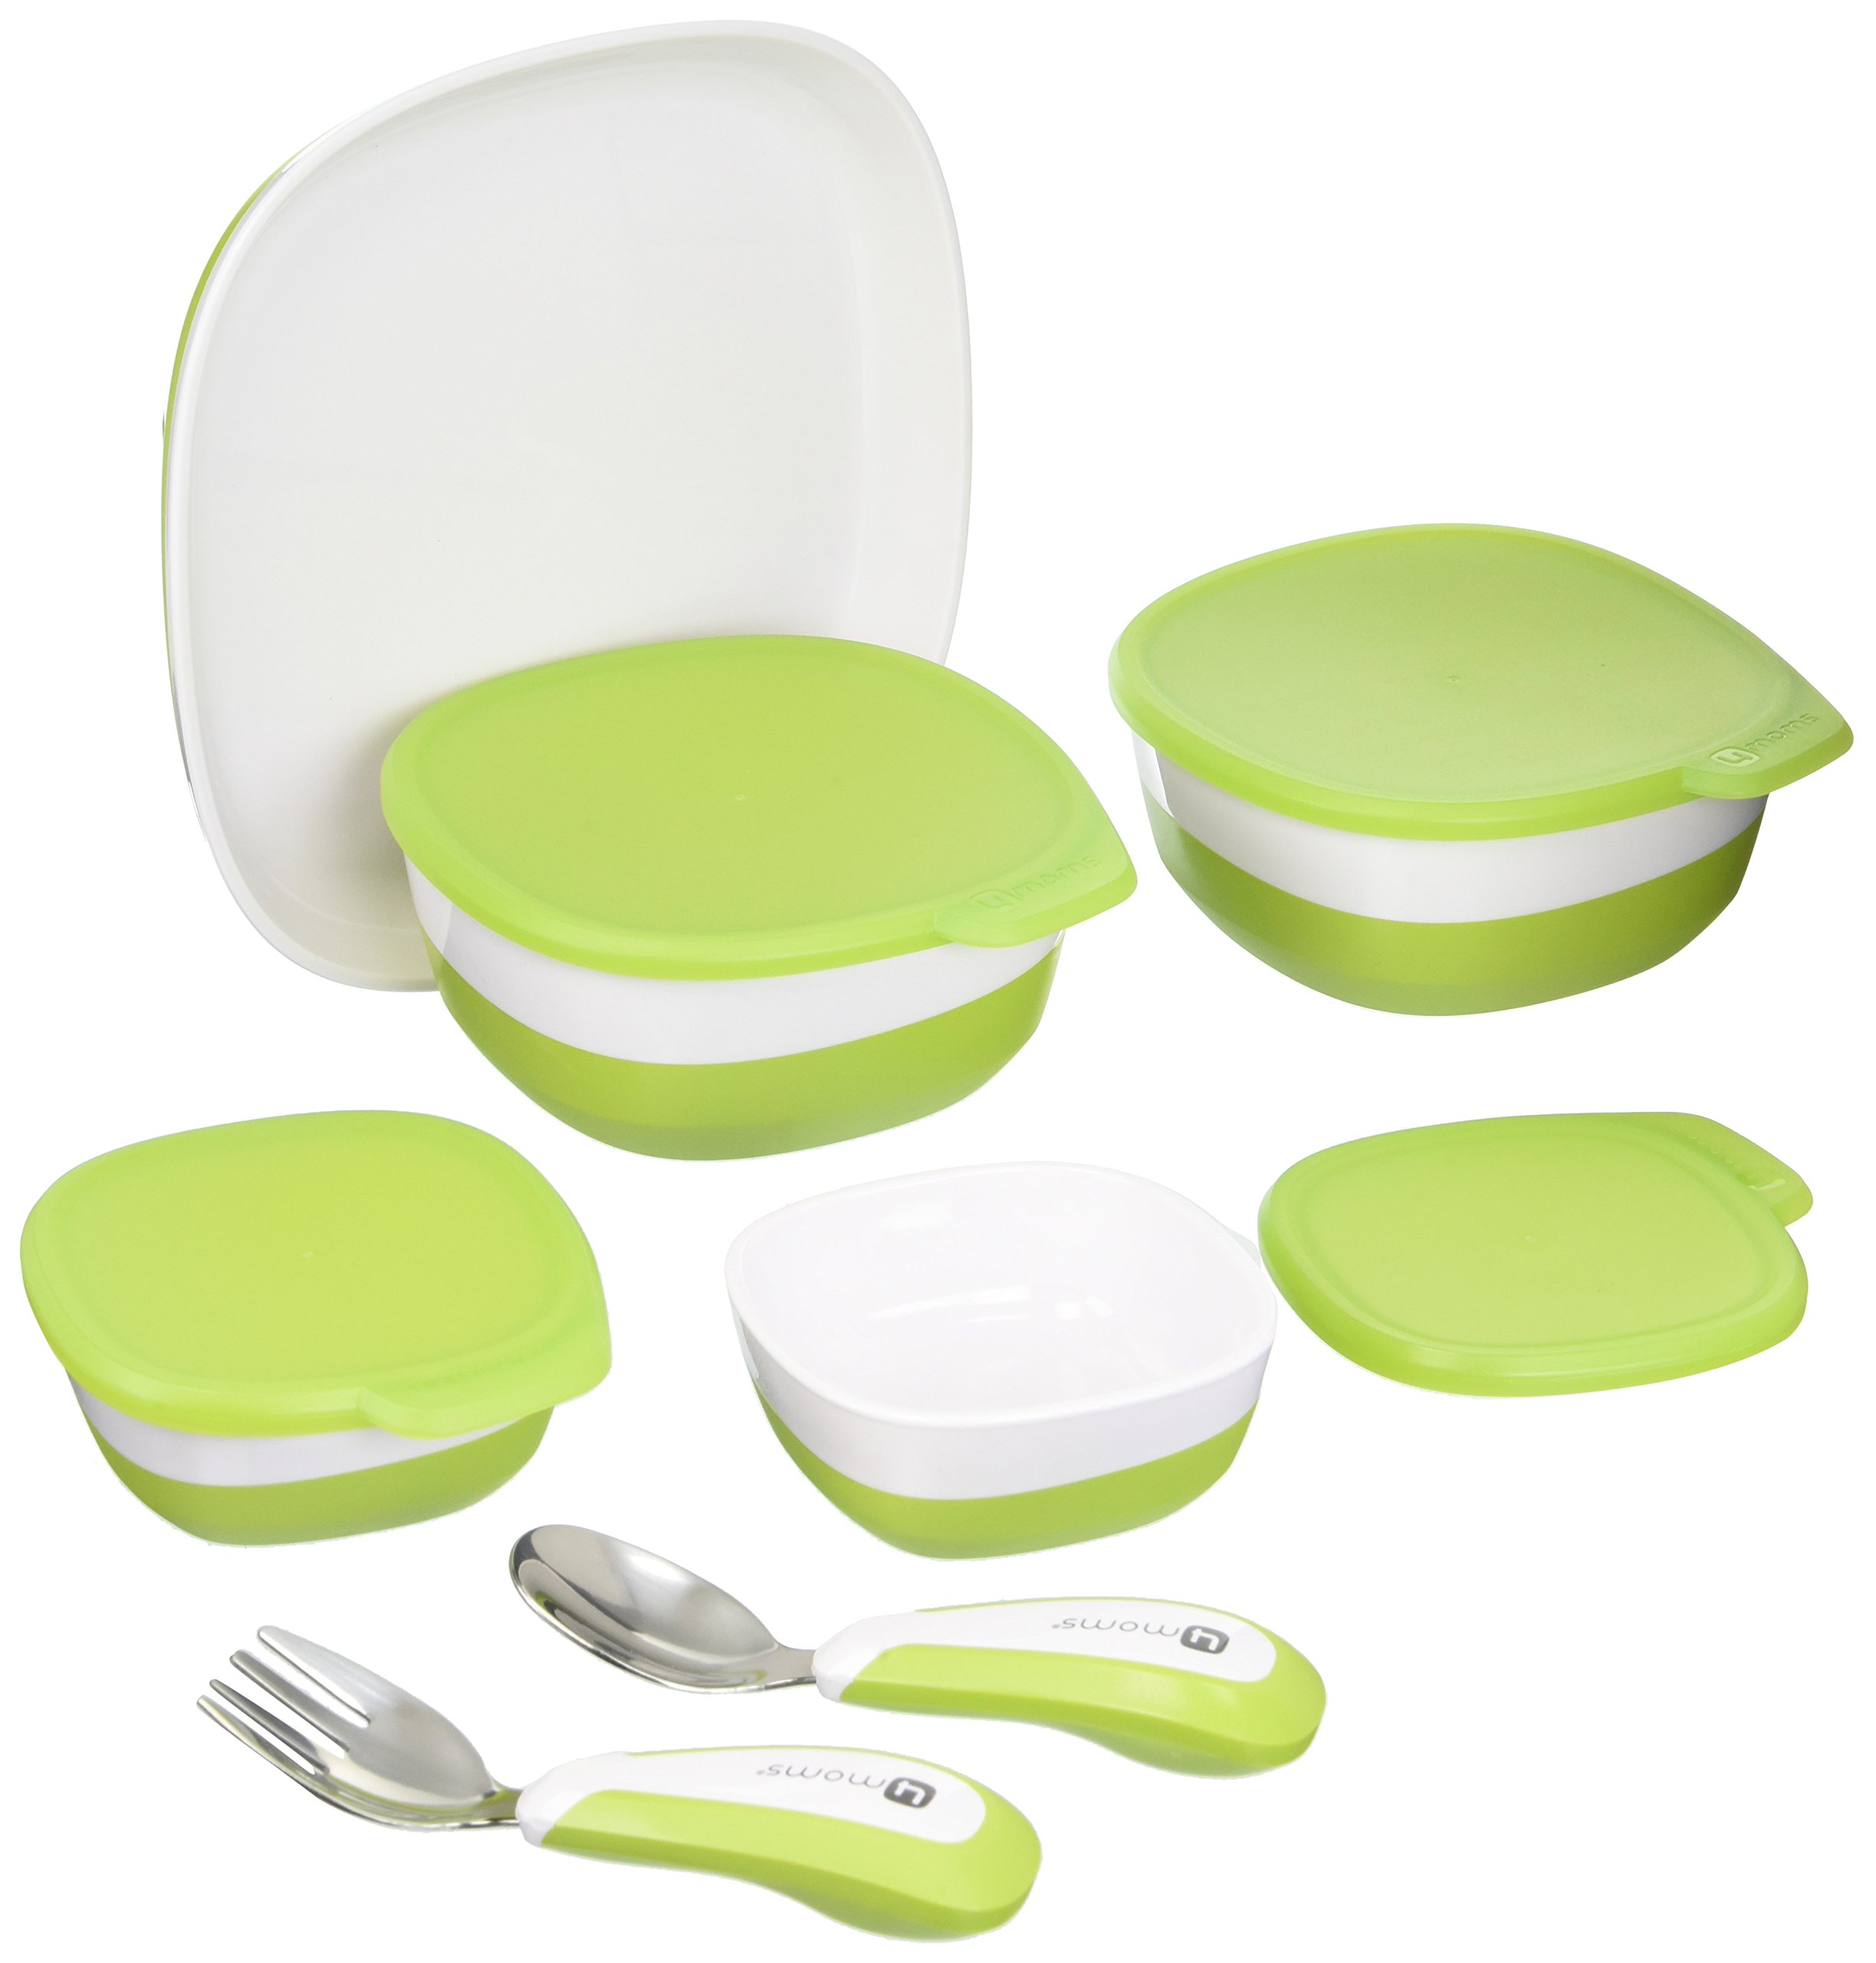 4moms high Chair Magnetic Plate, Bowls and Utensils Feeding Set - Dishwasher Safe by 4moms